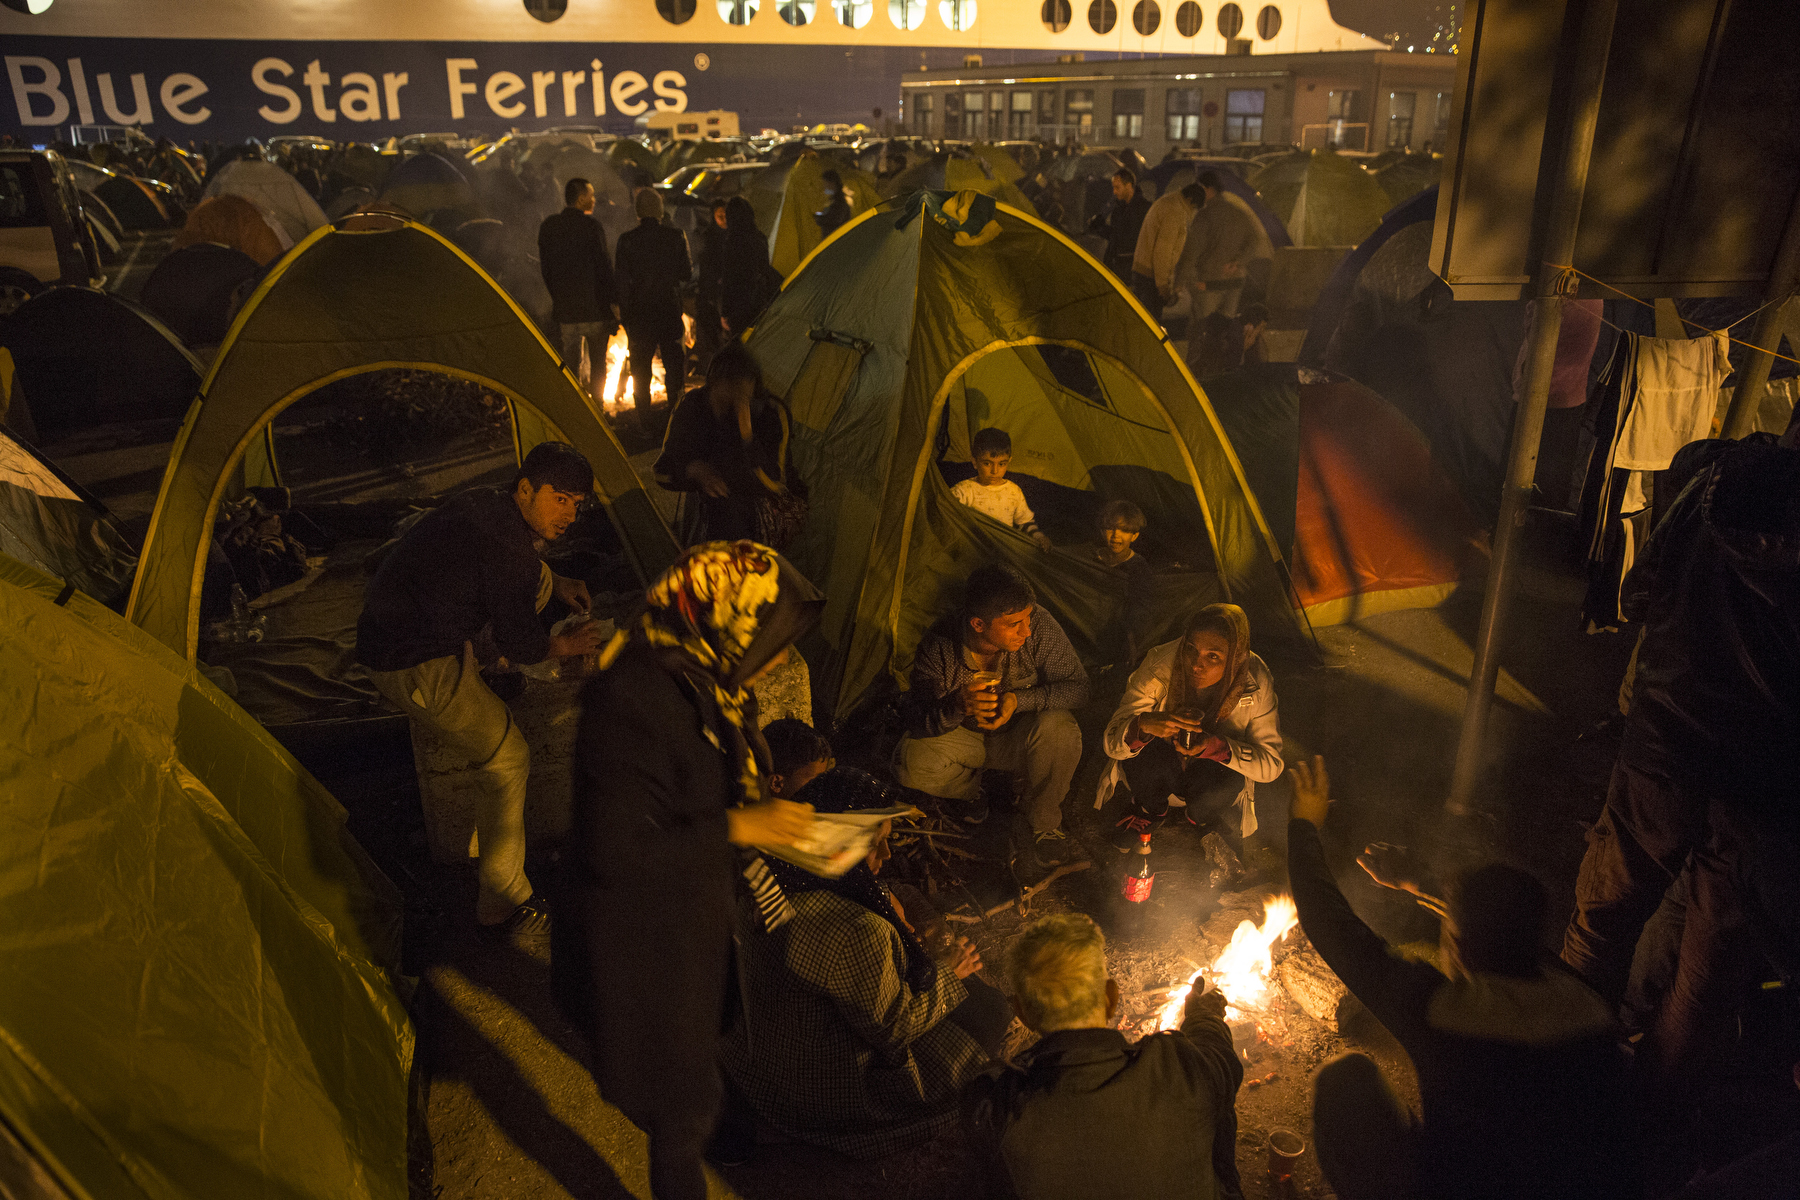 LESBOS, GREECE - NOVEMBER 5: Refugees take over the ferry terminal turning it into a campground as they wait for days to board the ferry to Athens on Lesbos, Greece on November 5, 2015. Dozens of rafts and boats are still making the journey daily over 590,000 people have crossed into the gateway of Europe. Nearly all of those are from the war zones of Syria, Iraq and Afghanistan. (Photo by Paula Bronstein)